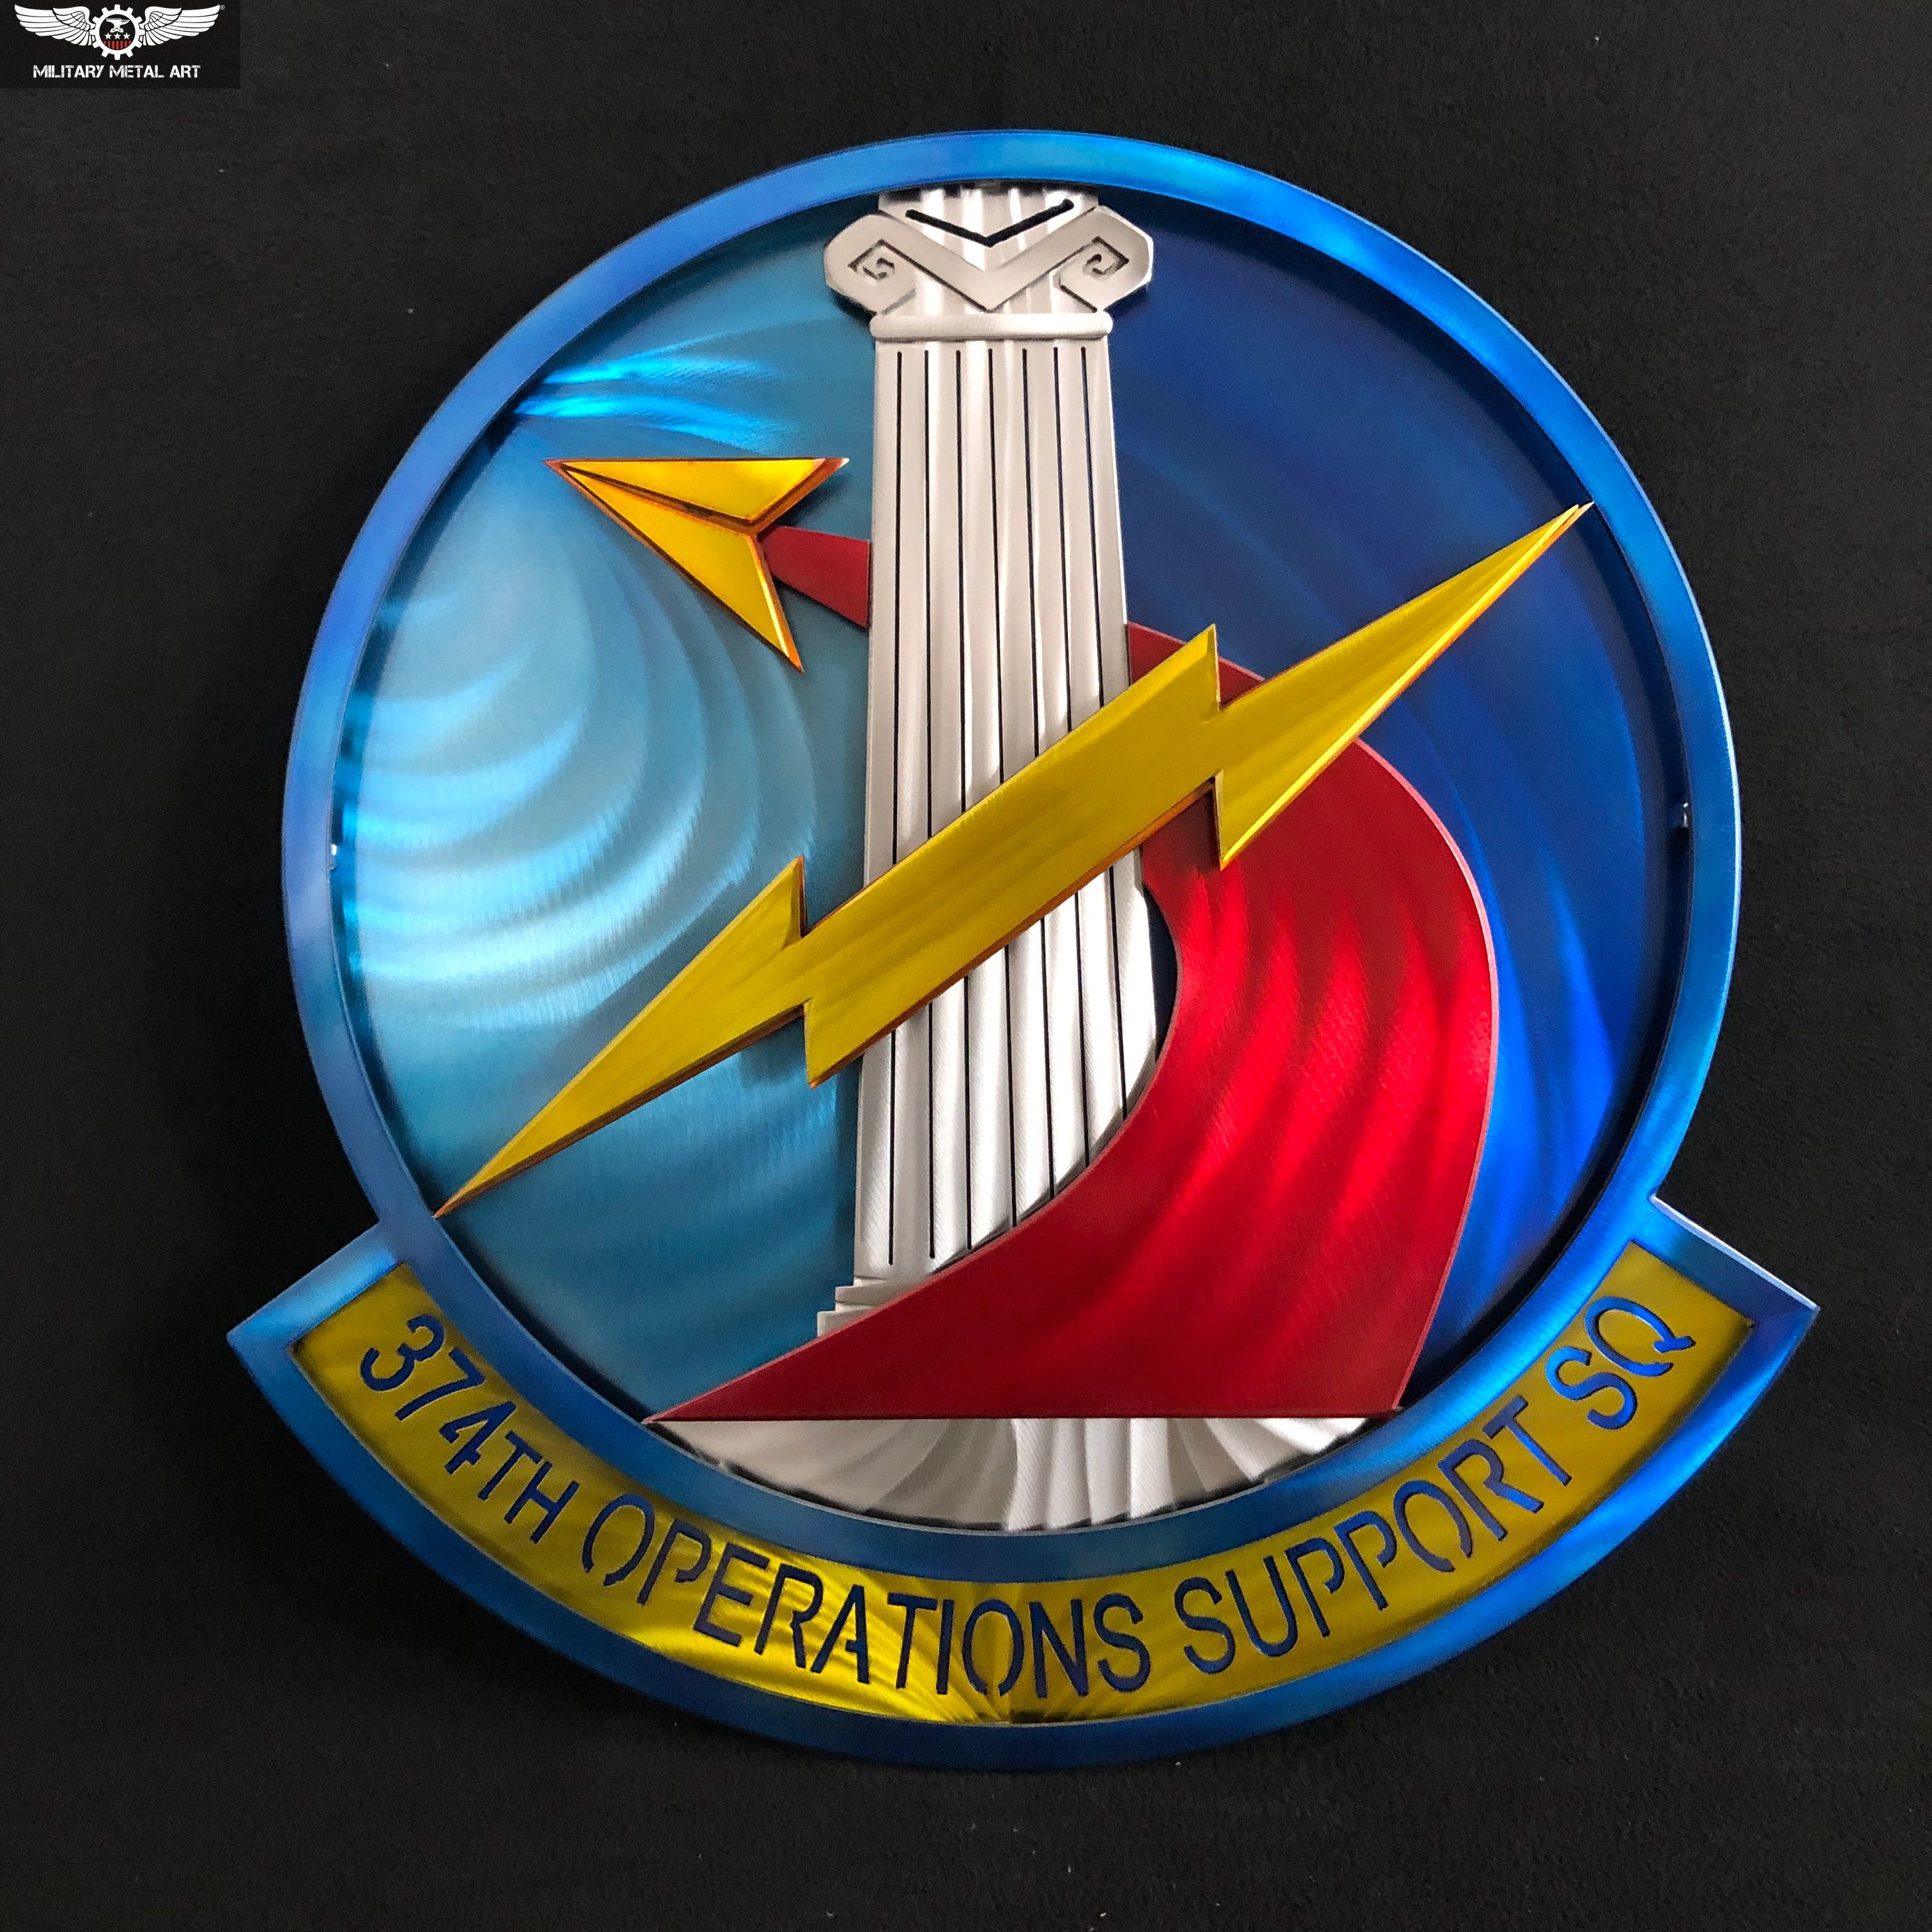 374th Operations Support Squadron   Military artwork ...